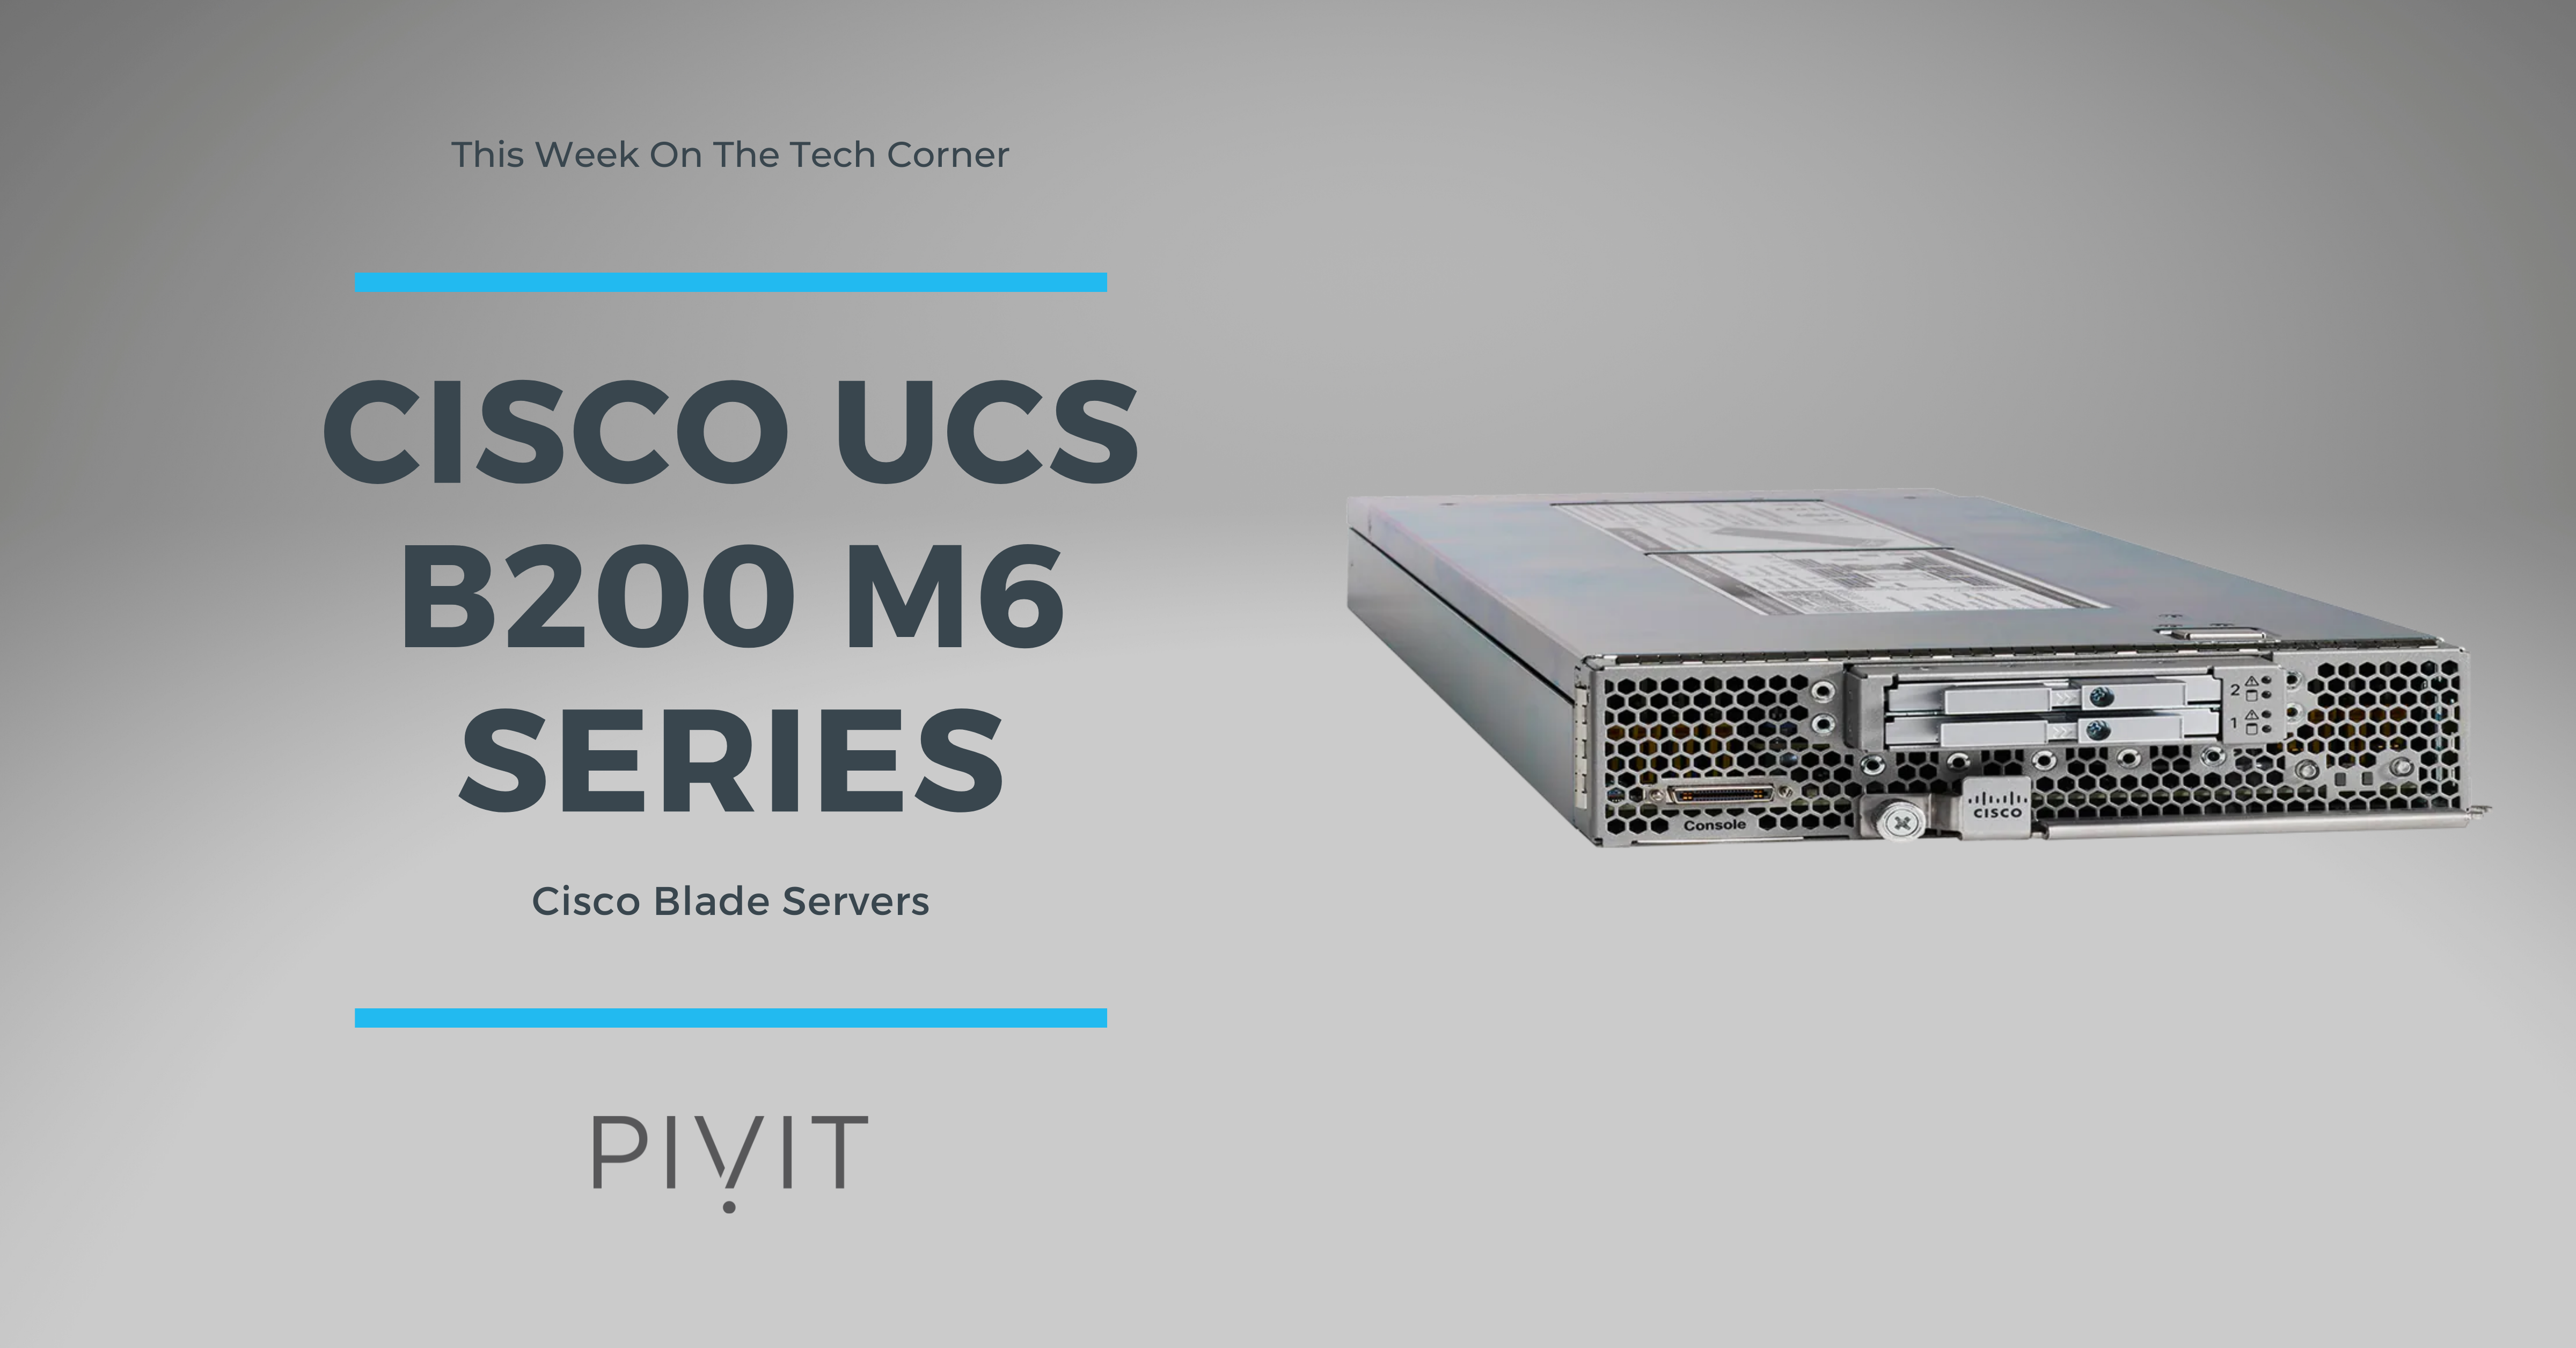 Newly Released, 3rd Gen. Intel-Powered UCS B200 M6 is Worth the Excitement